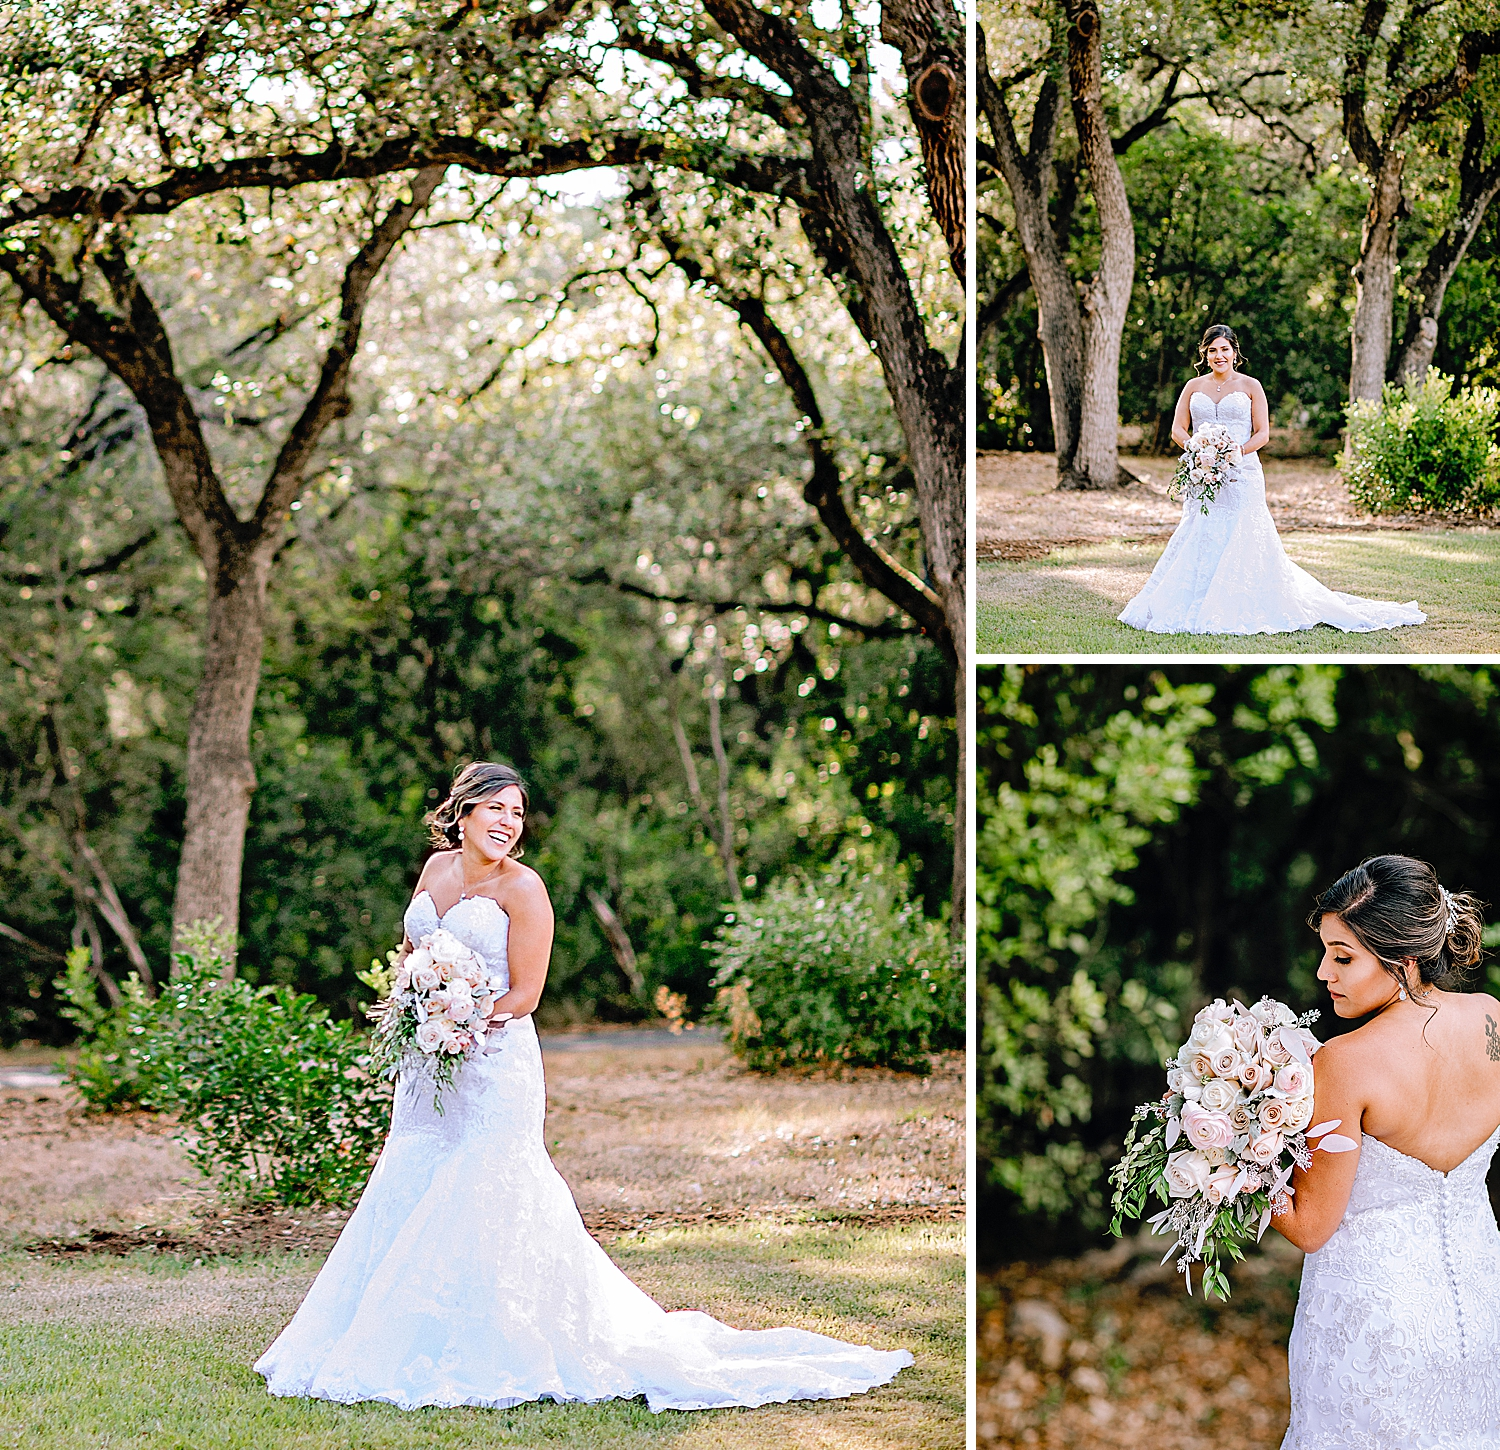 Carly-Barton-Photography-Bridal-Photos-Chadelier-of-Gruene-New-Braunfels-Wedding-Photographer_0009.jpg